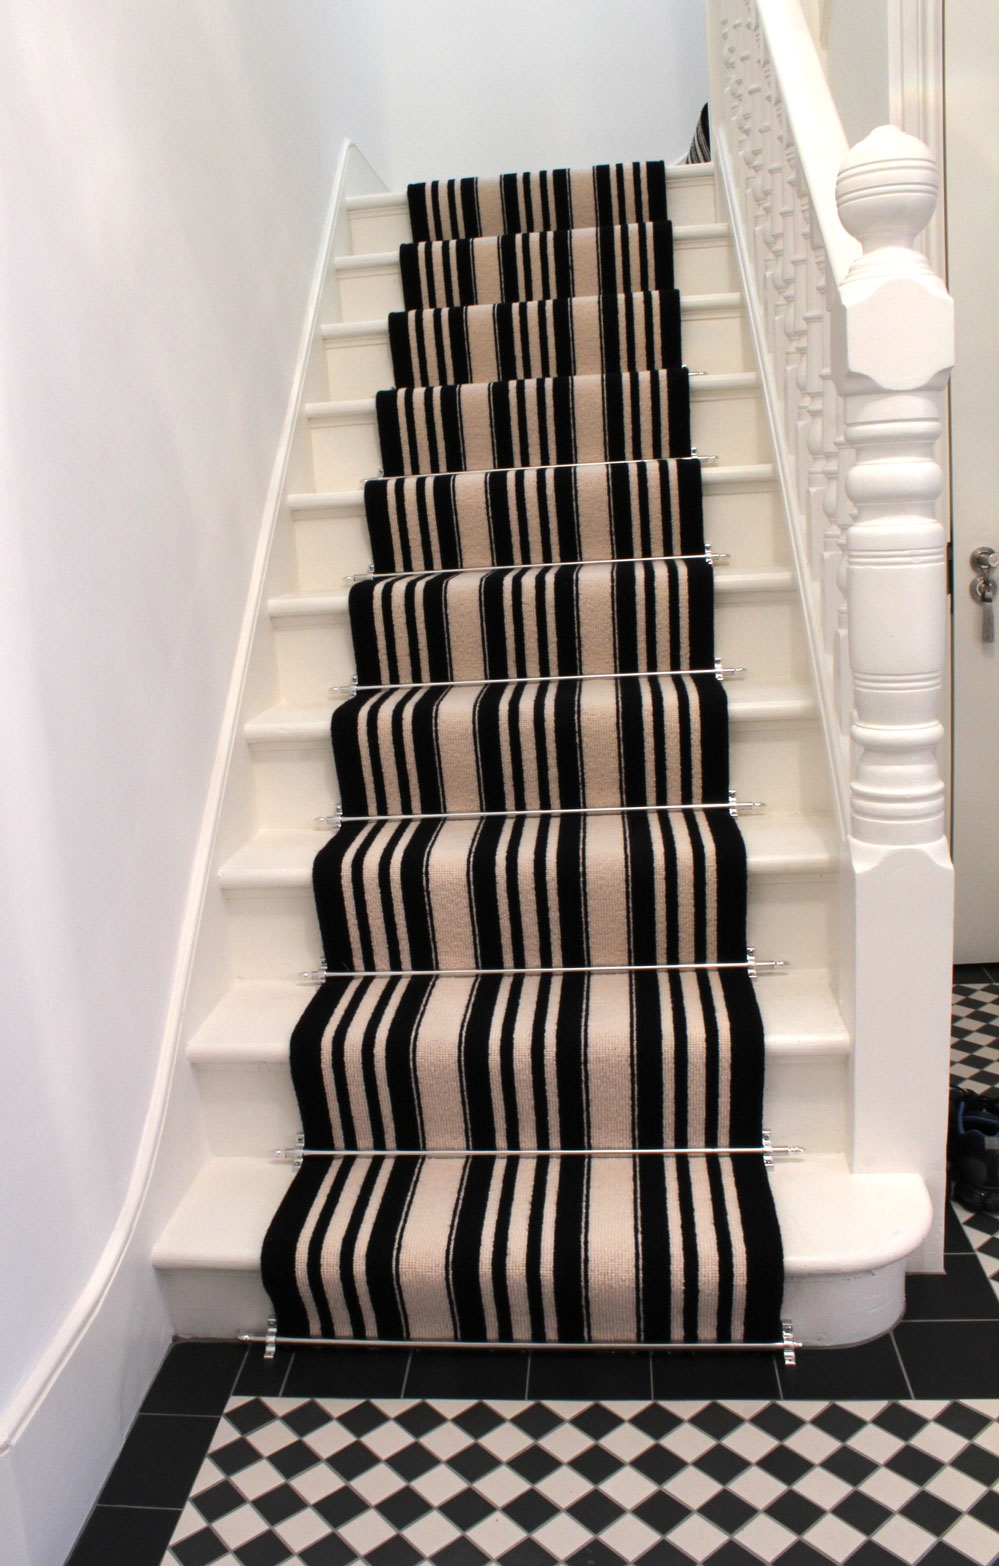 Mad About Stripes Google Images In Cream And Black Carpets (Image 15 of 15)